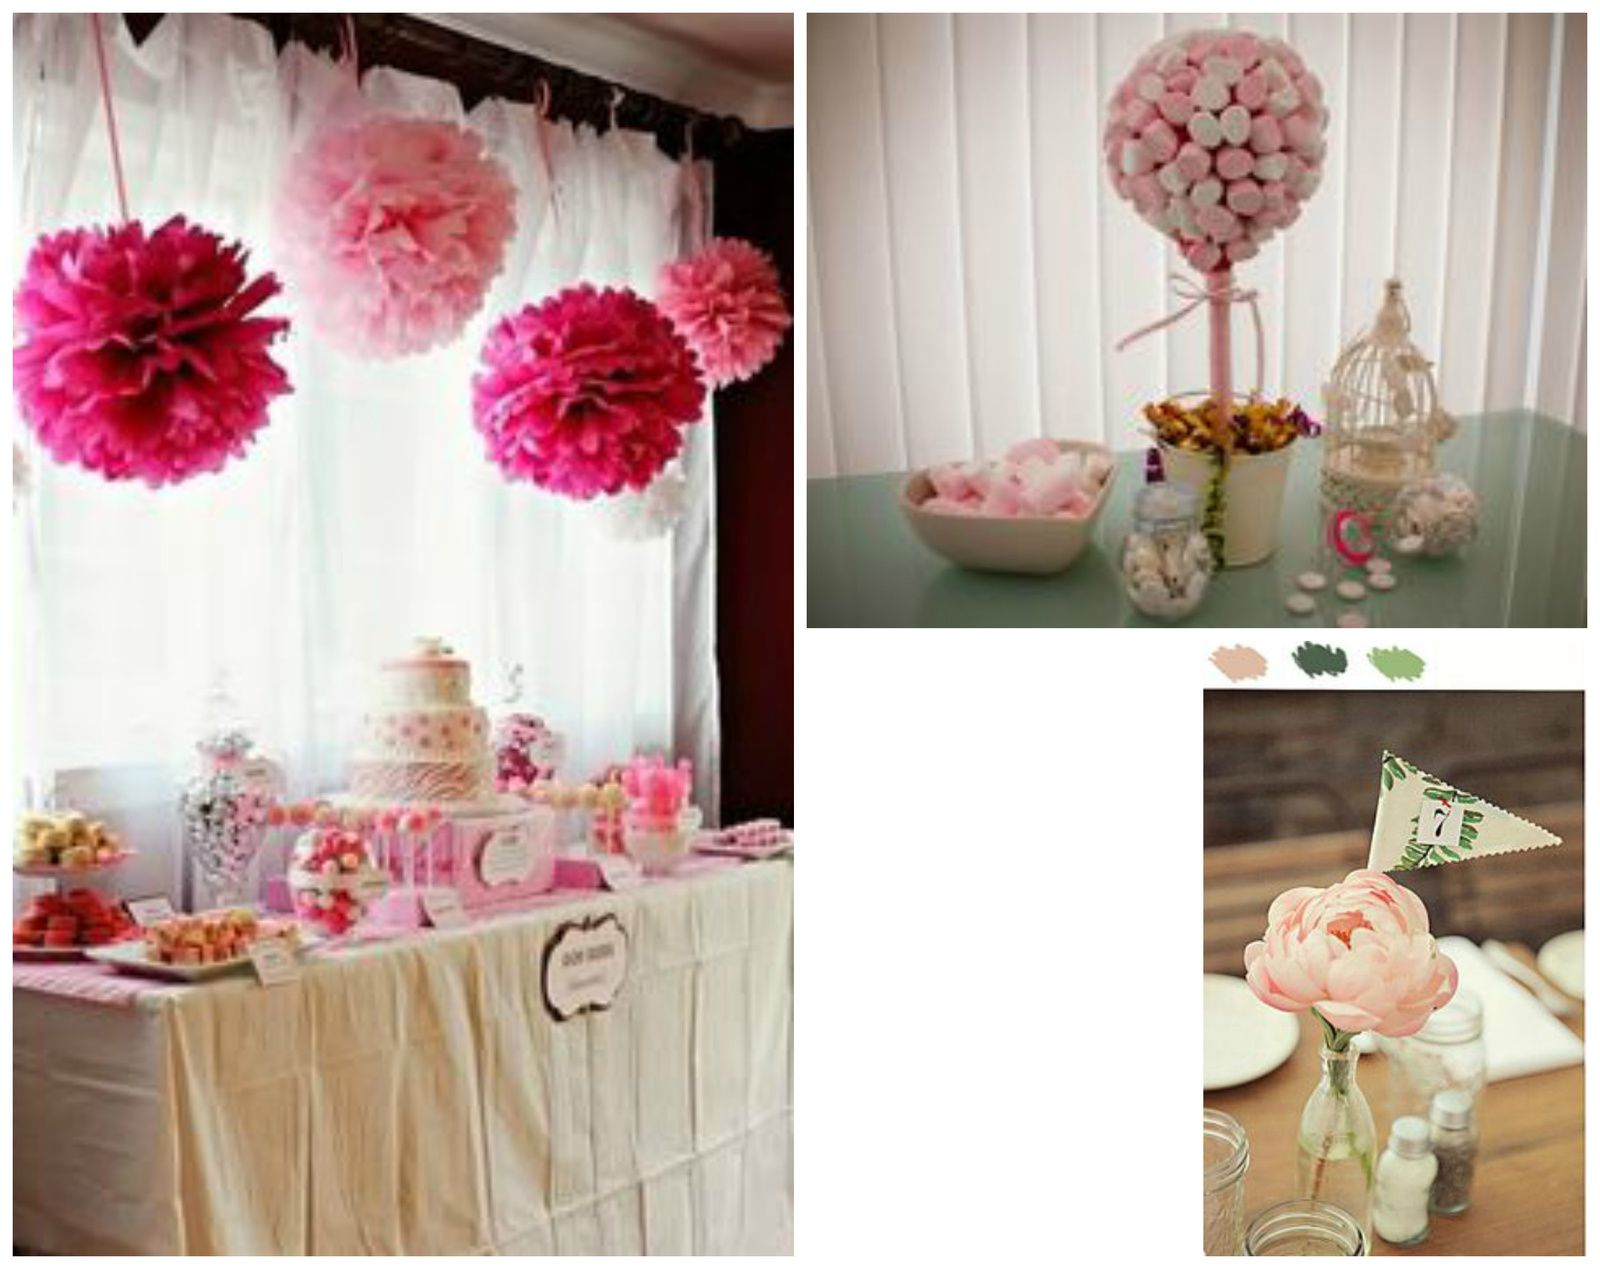 La deco pimprelys - Idee deco table bapteme fille ...